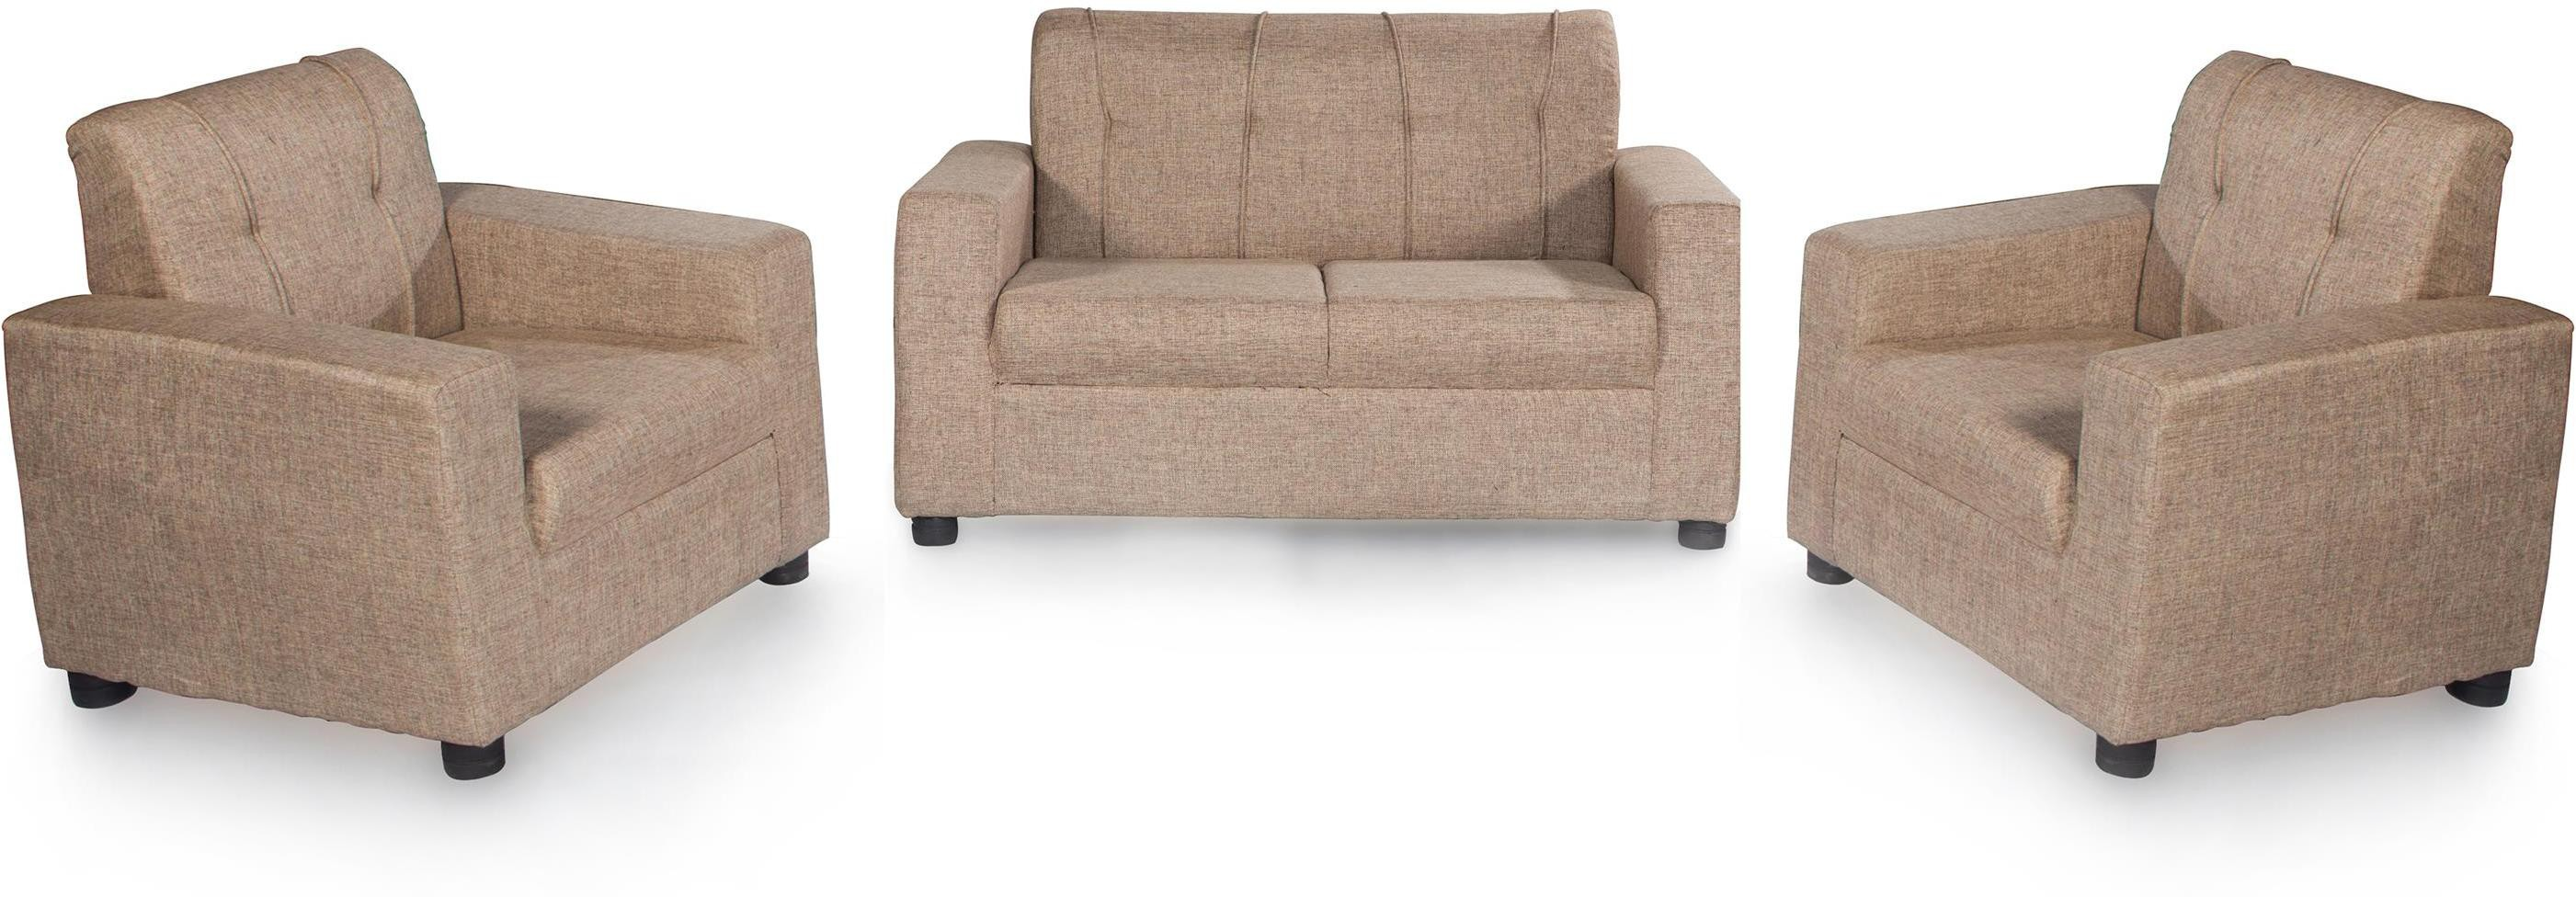 View Furnicity Fabric 2 + 1 + 1 Beige Sofa Set(Configuration - Straight) Furniture (Furnicity)